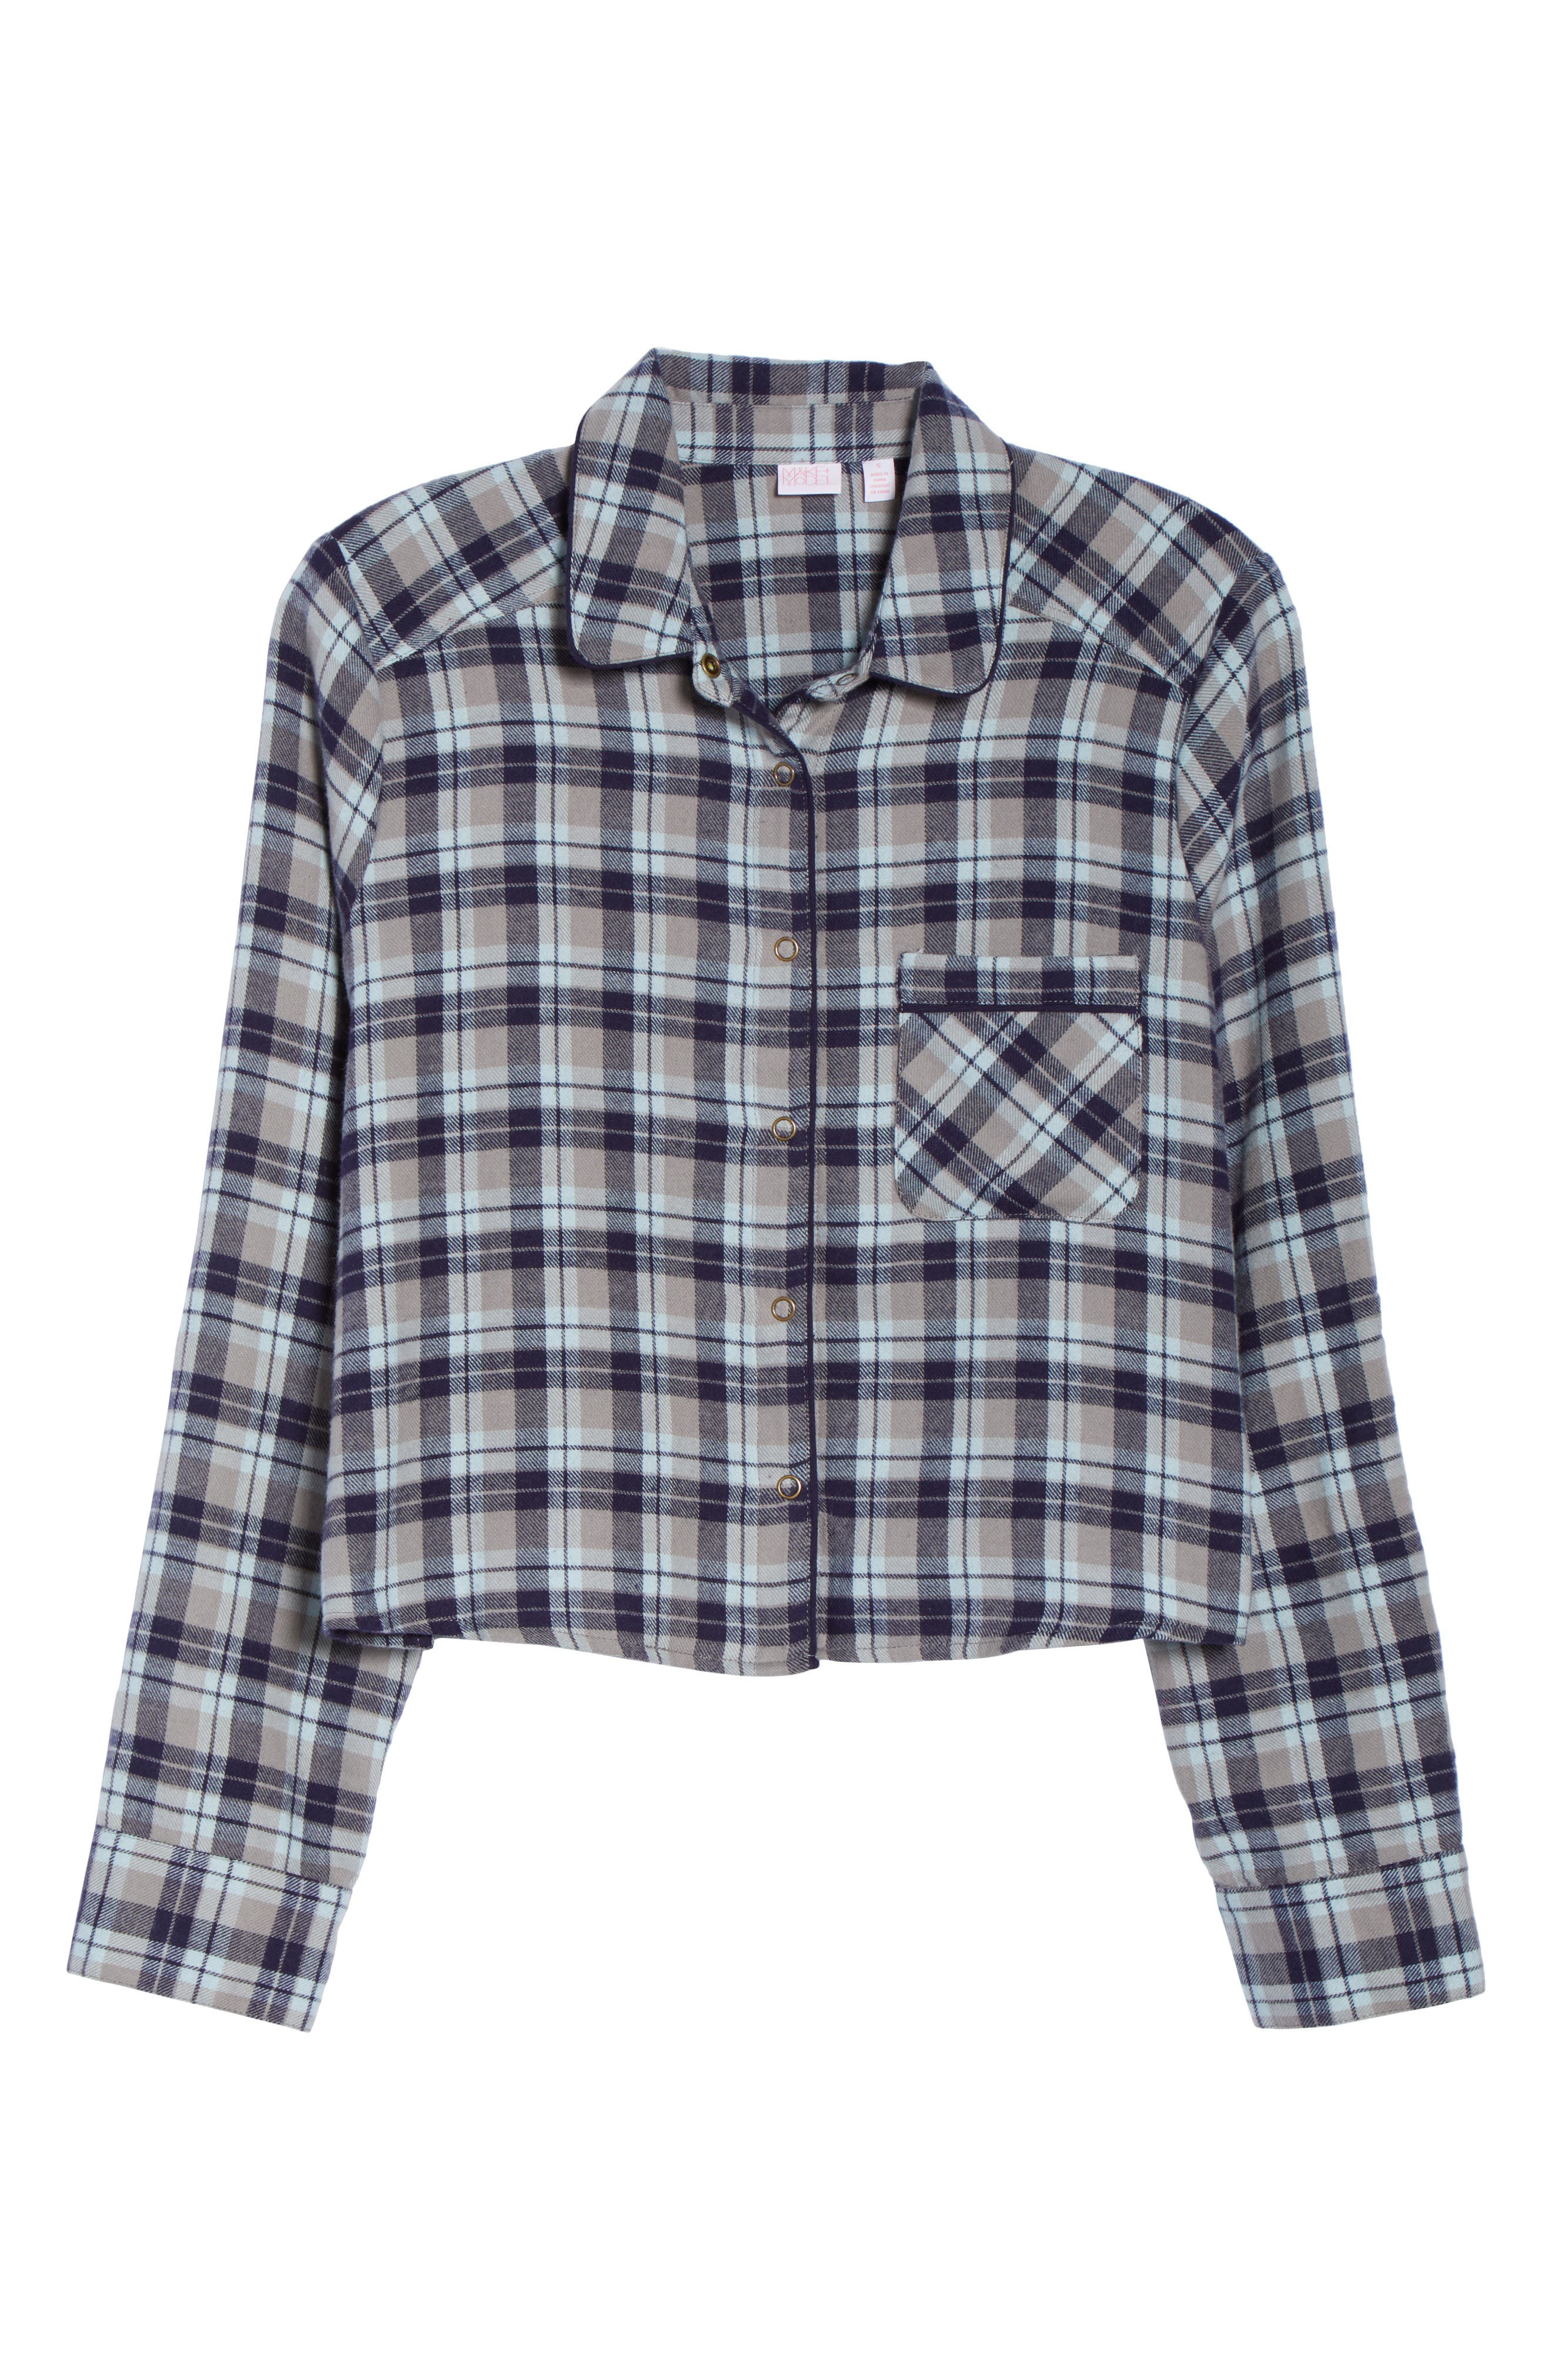 Crop Flannel Pajama Top,                             Alternate thumbnail 6, color,                             GREY FROST LUCY PLAID